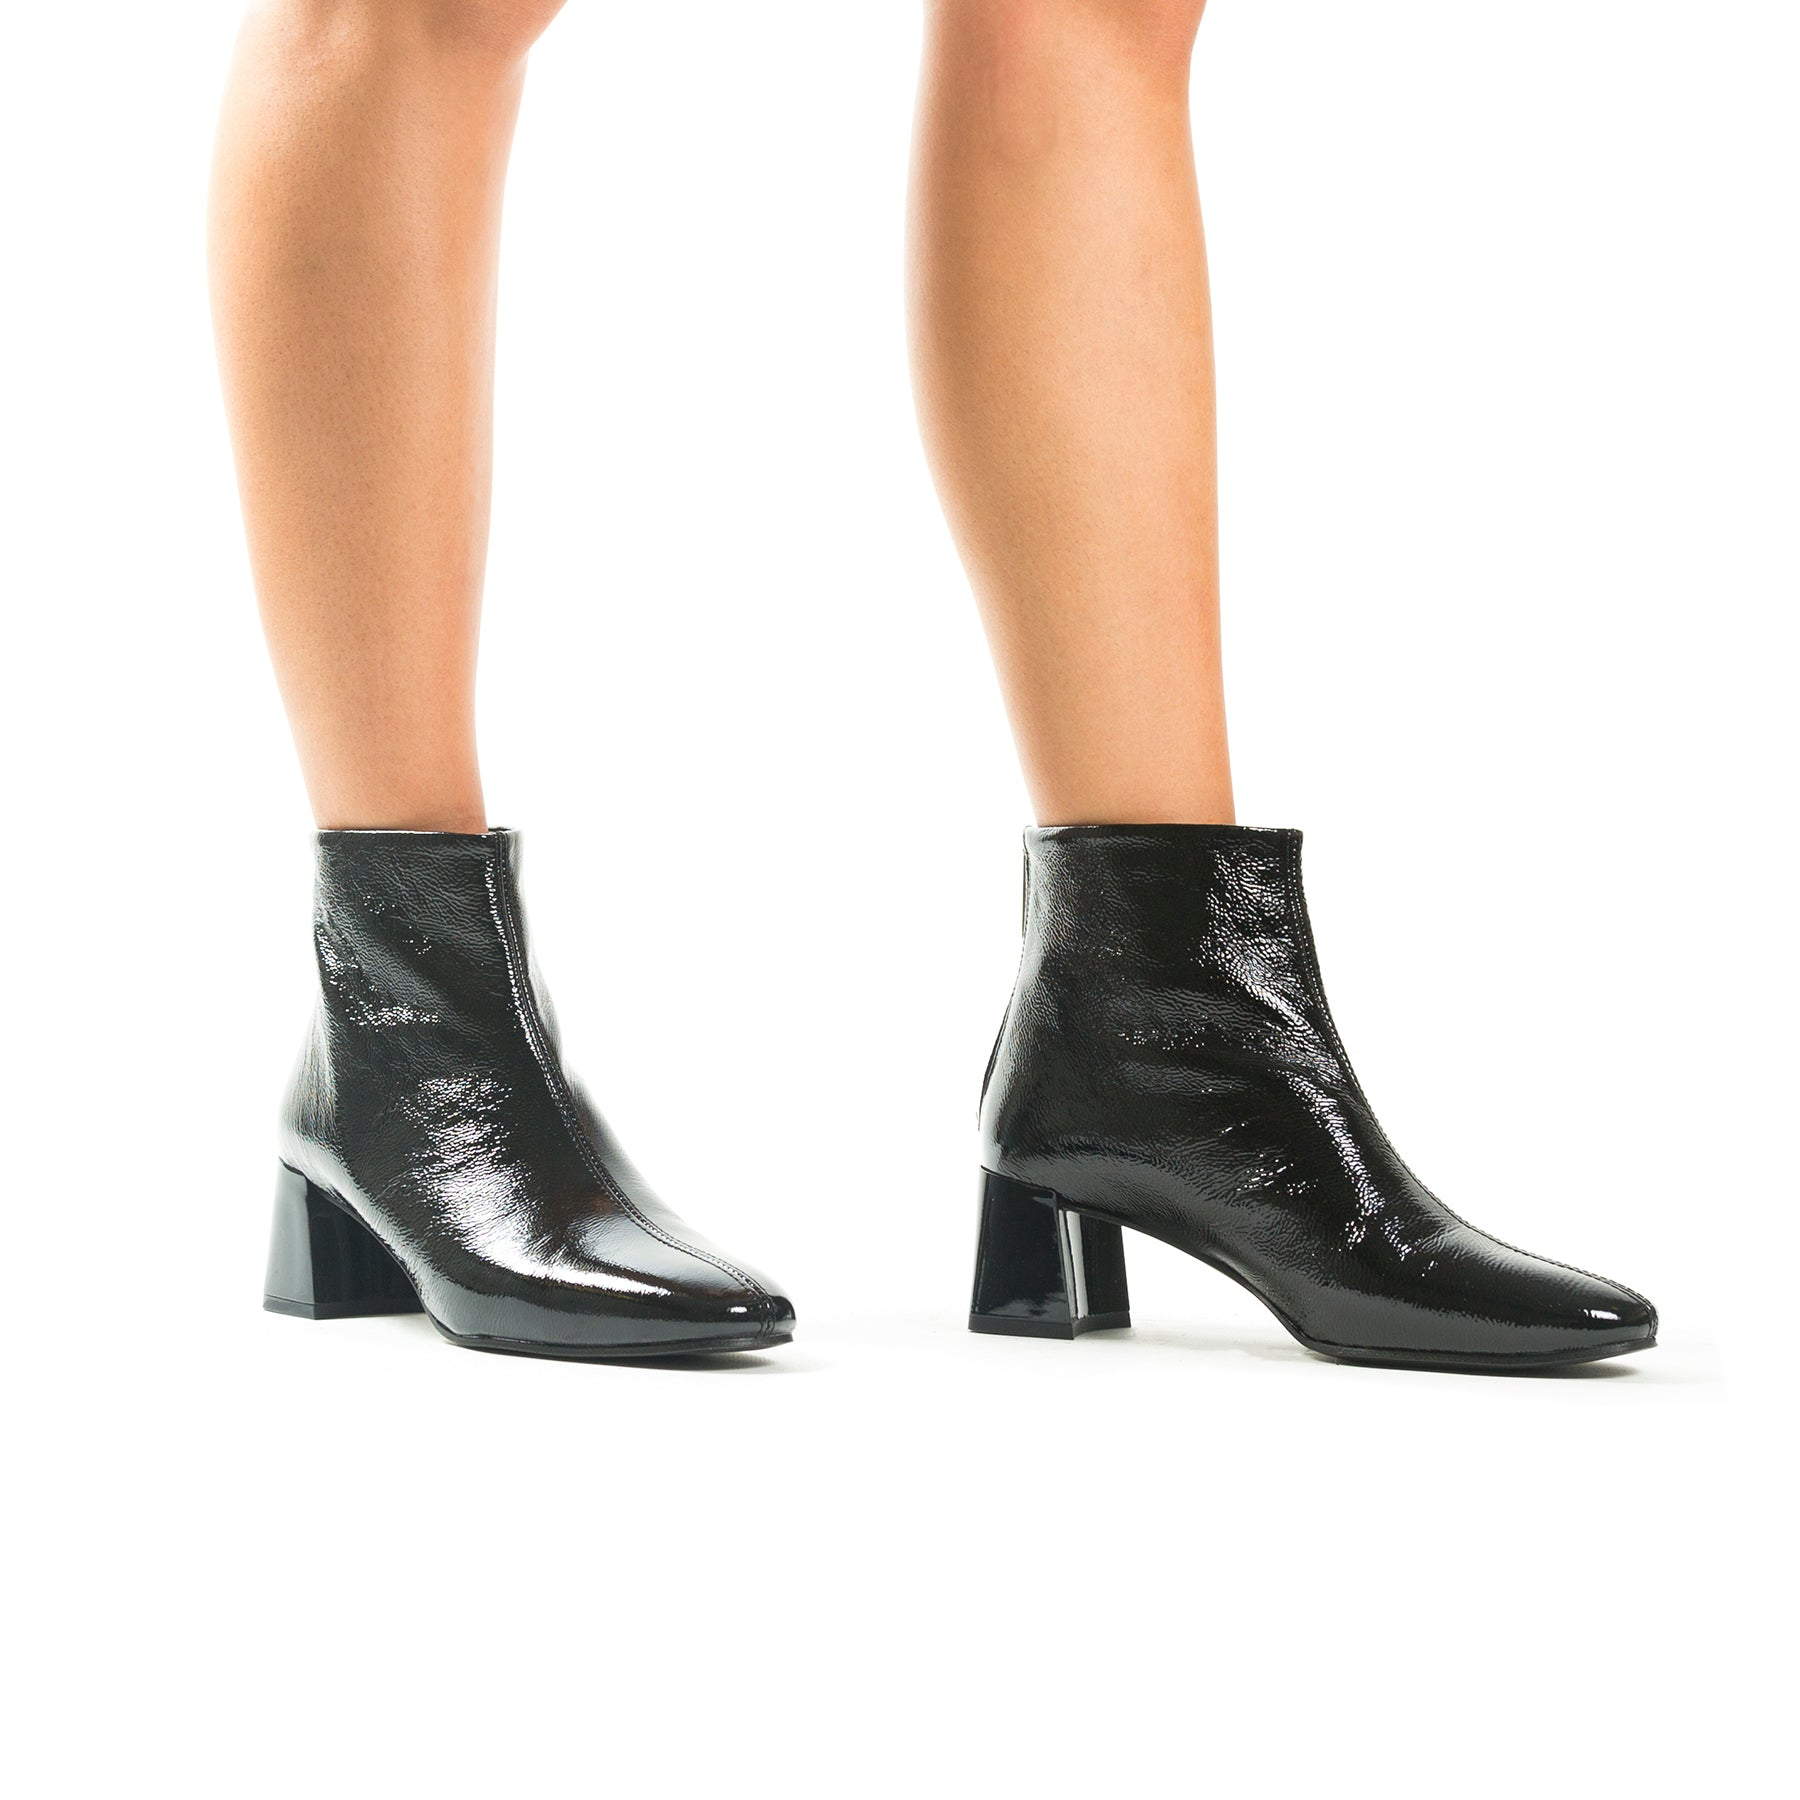 Zagreb Black Naplack Ankle Boots